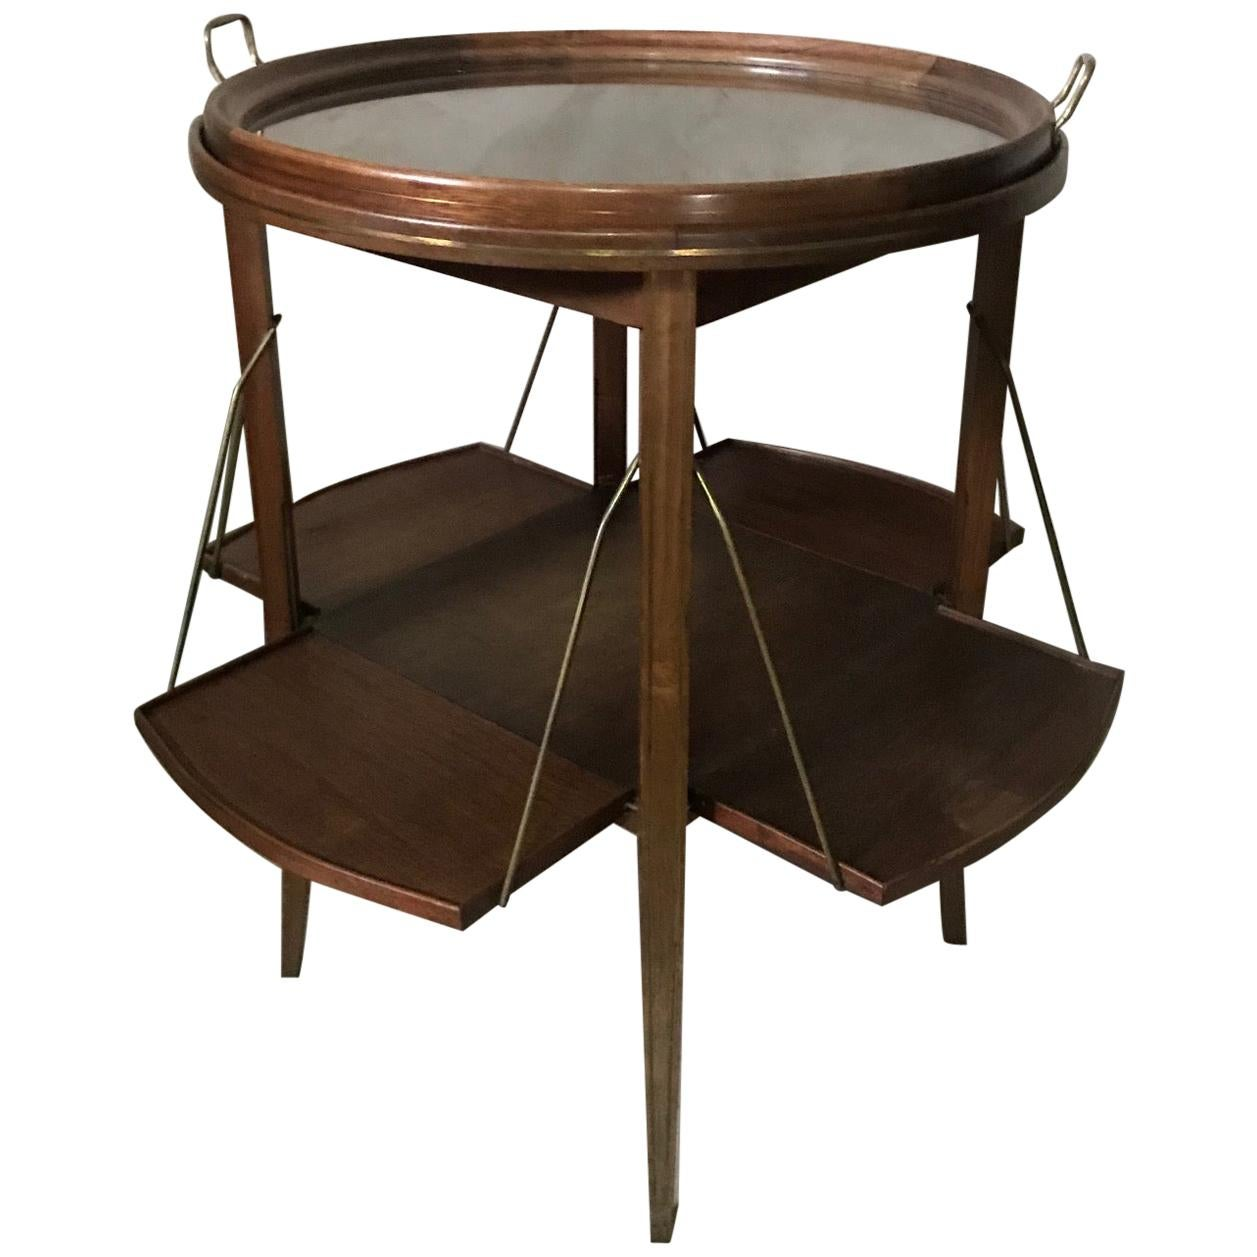 20th Century French Walnut and Glass Tea Table, 1920s